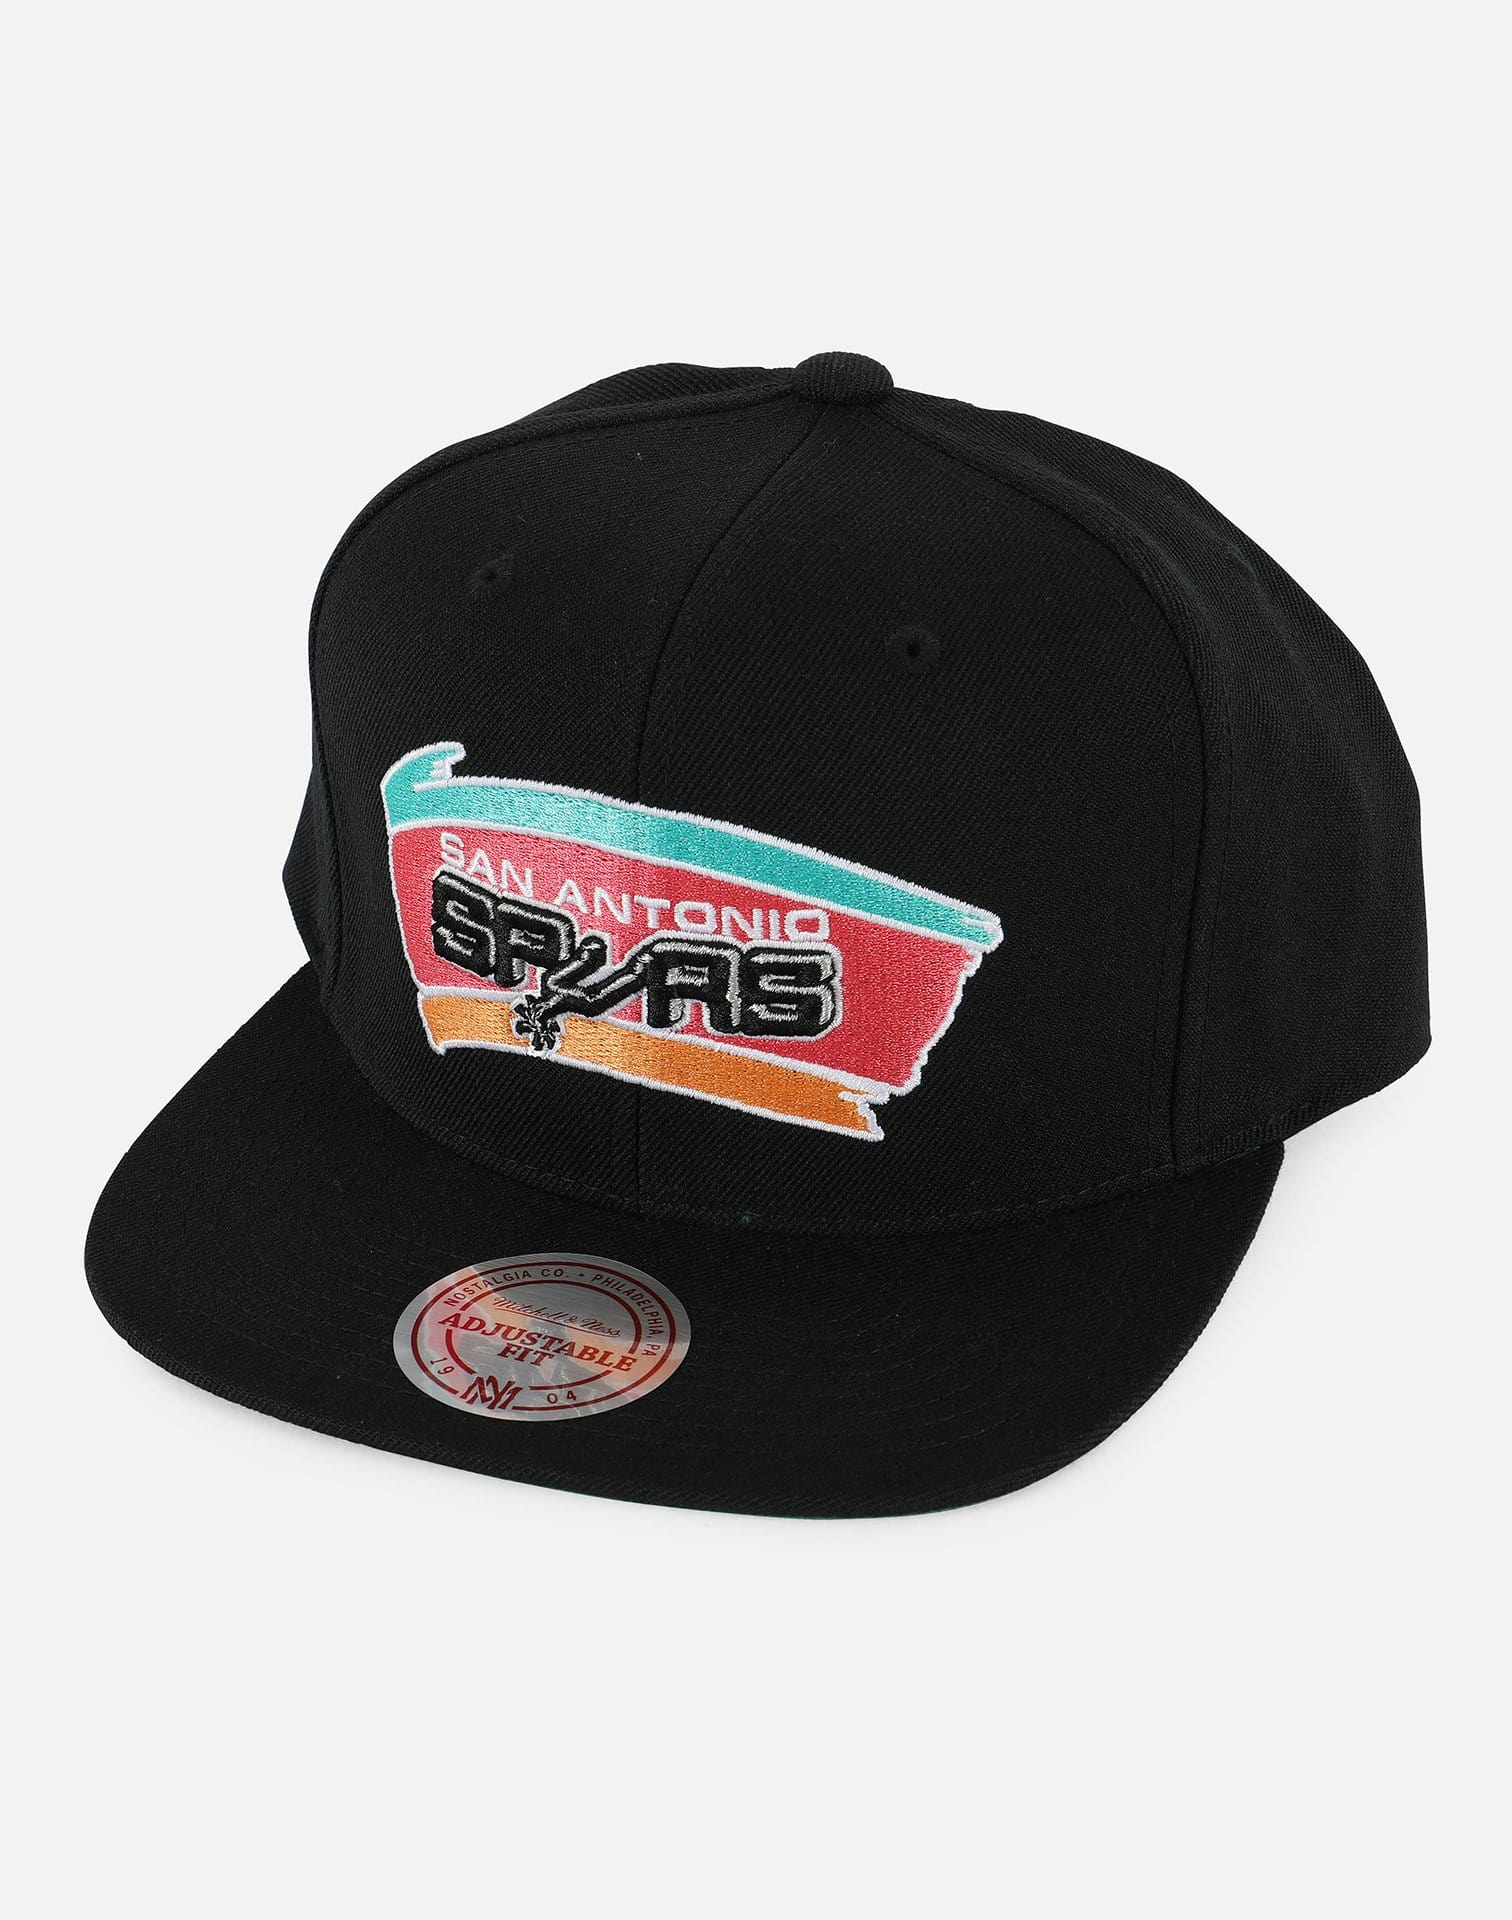 Mitchell & Ness NBA San Antonio Spurs Wool Snapback Hat